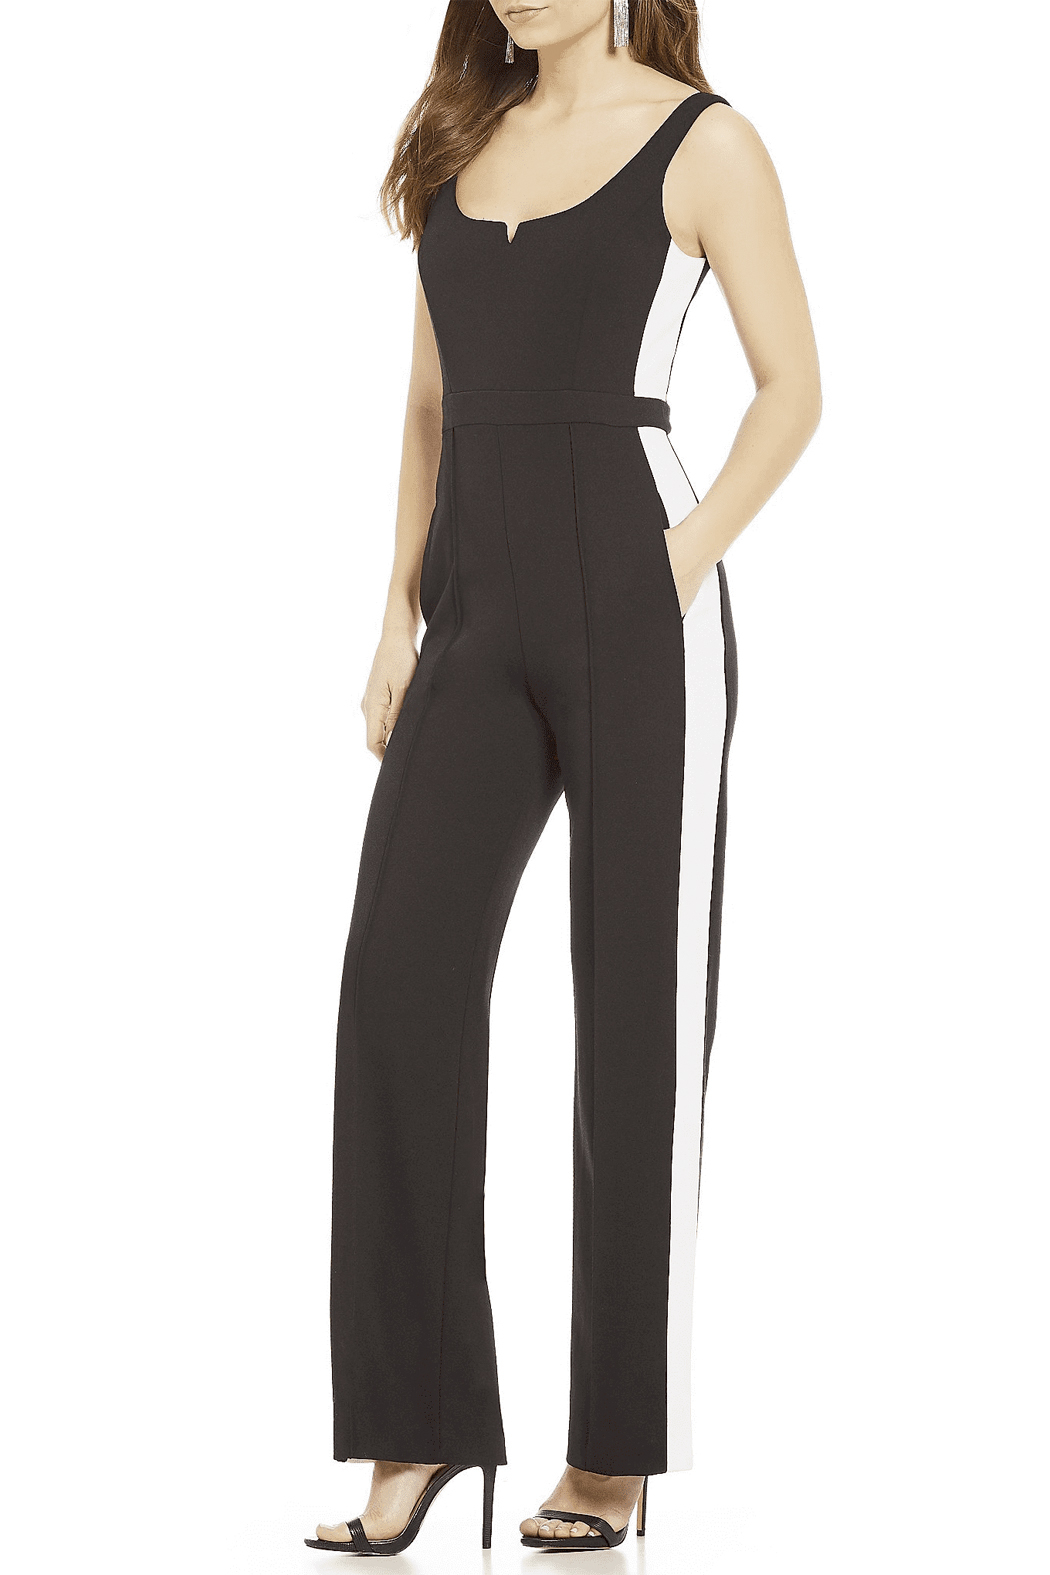 Donna Morgan Jumpsuit with White Side Stripes - Front Full Image